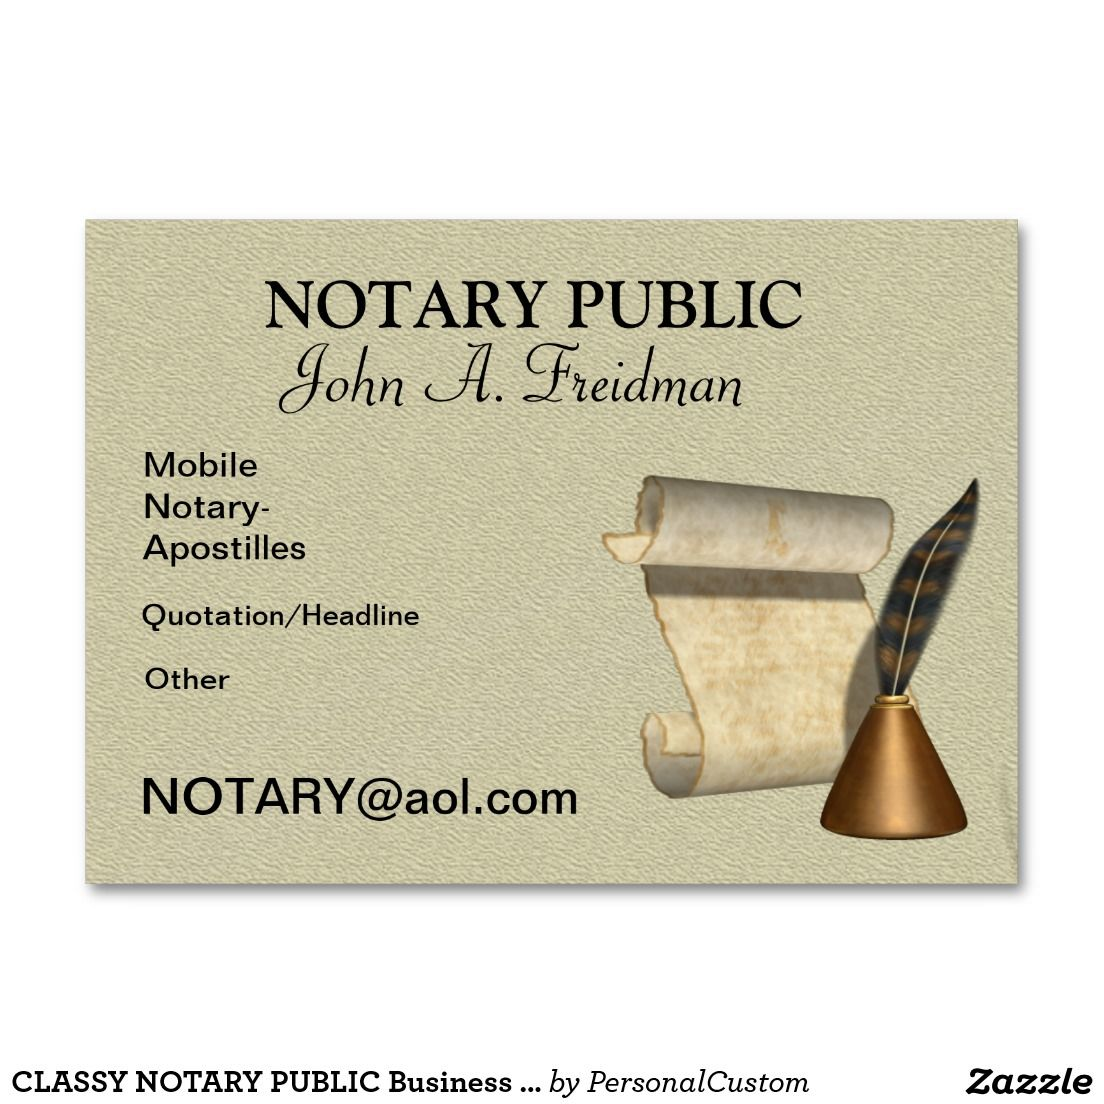 CLASSY NOTARY PUBLIC Business Card Notary